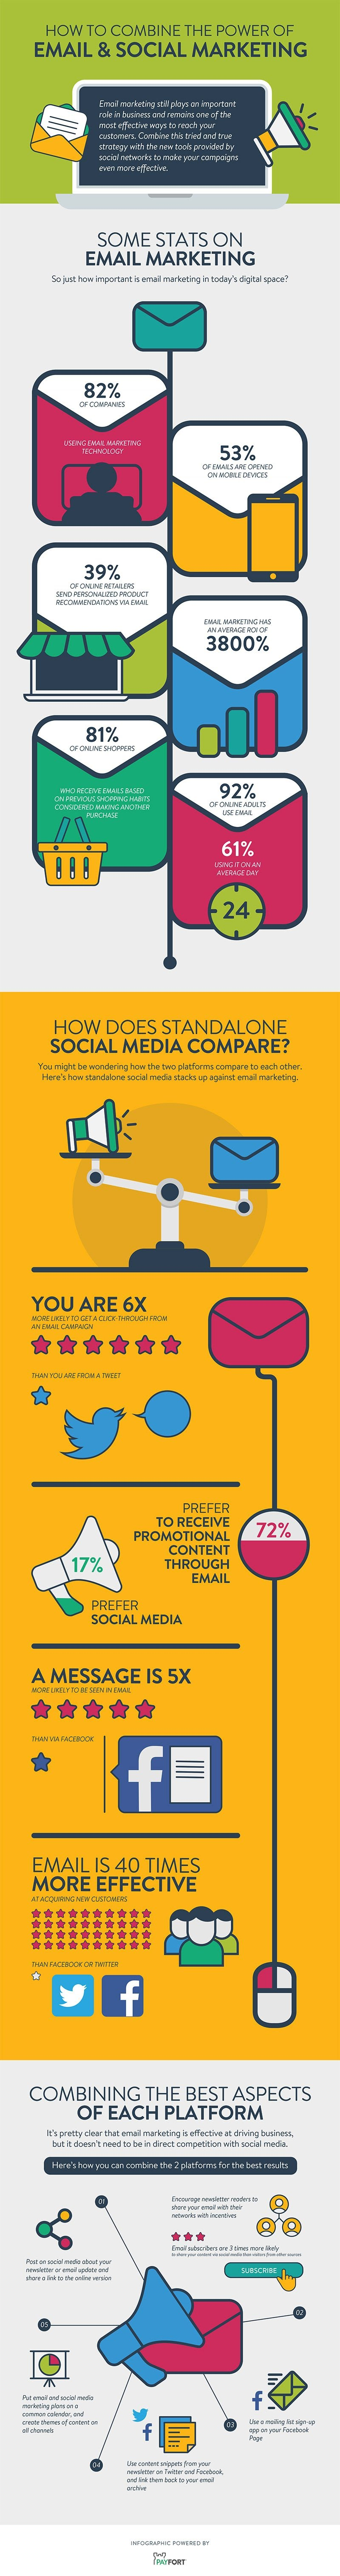 How To Combine The Power Of Email And Social Marketing - #infographic